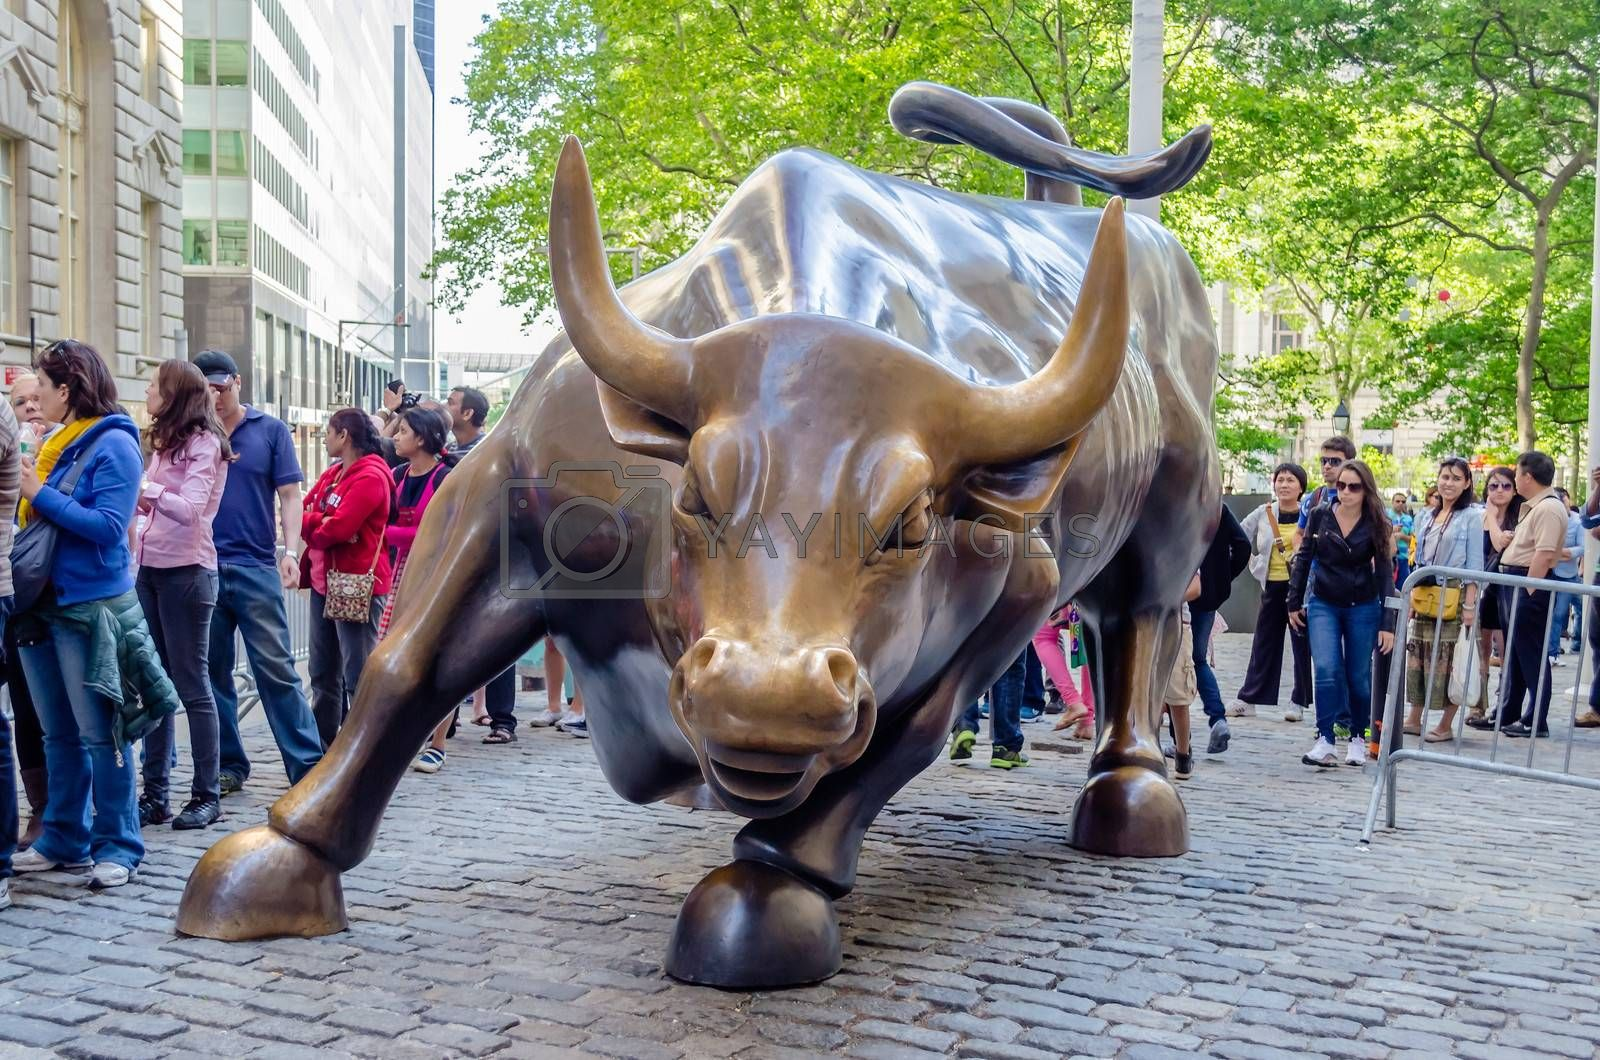 NEW YORK - MAY 27: The landmark Charging Bull in Downtown Manhattan, May 27, 2013. The sculpture is a popular tourist destination and represents aggressive financial optimism and prosperity